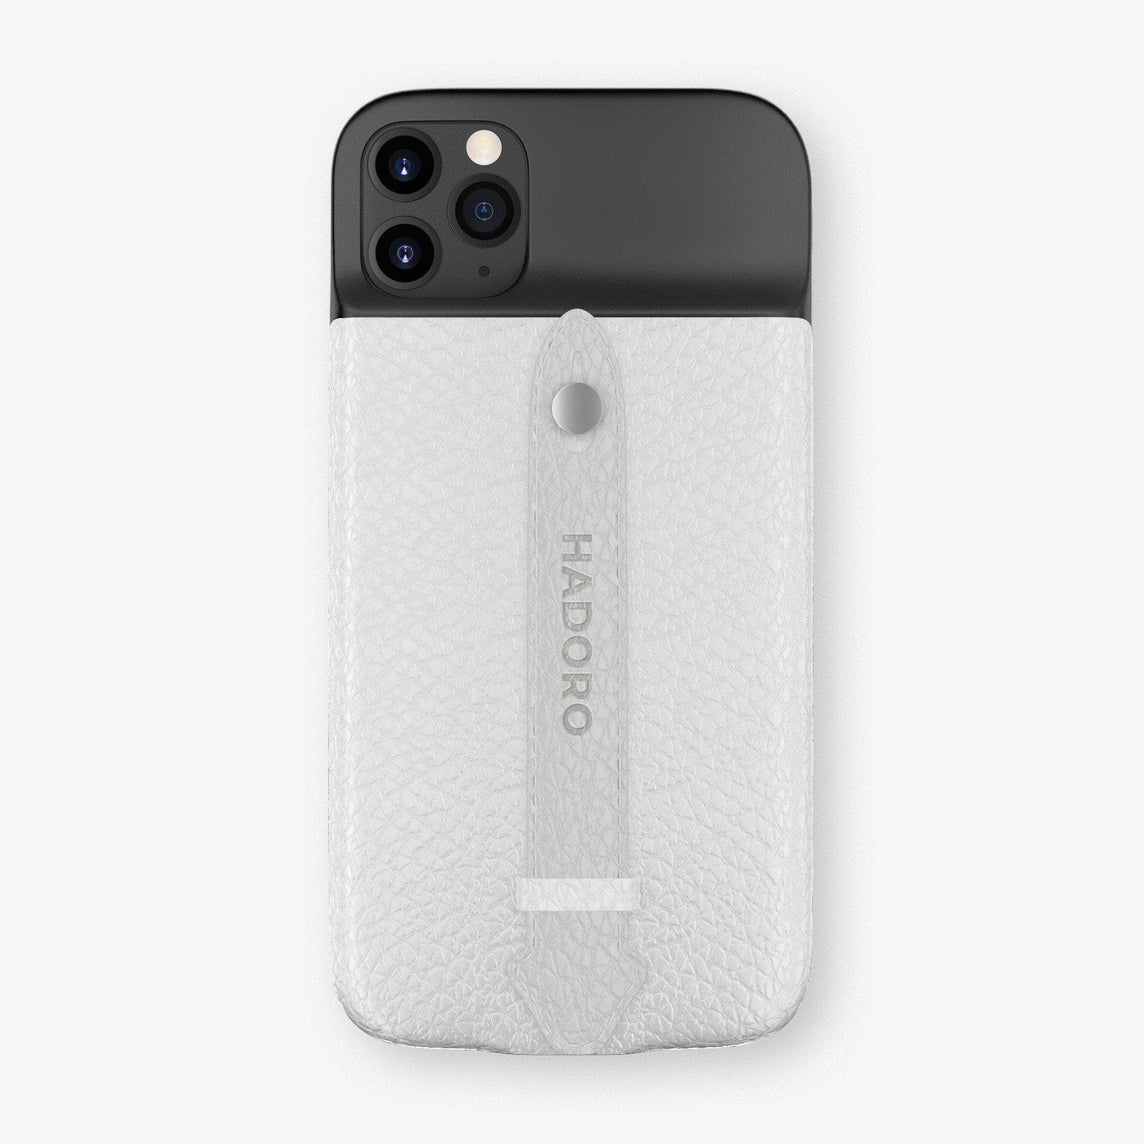 Calfskin Battery Finger Case for iPhone 11 Pro Max | White/Grey - Stainless Steel without-personalization